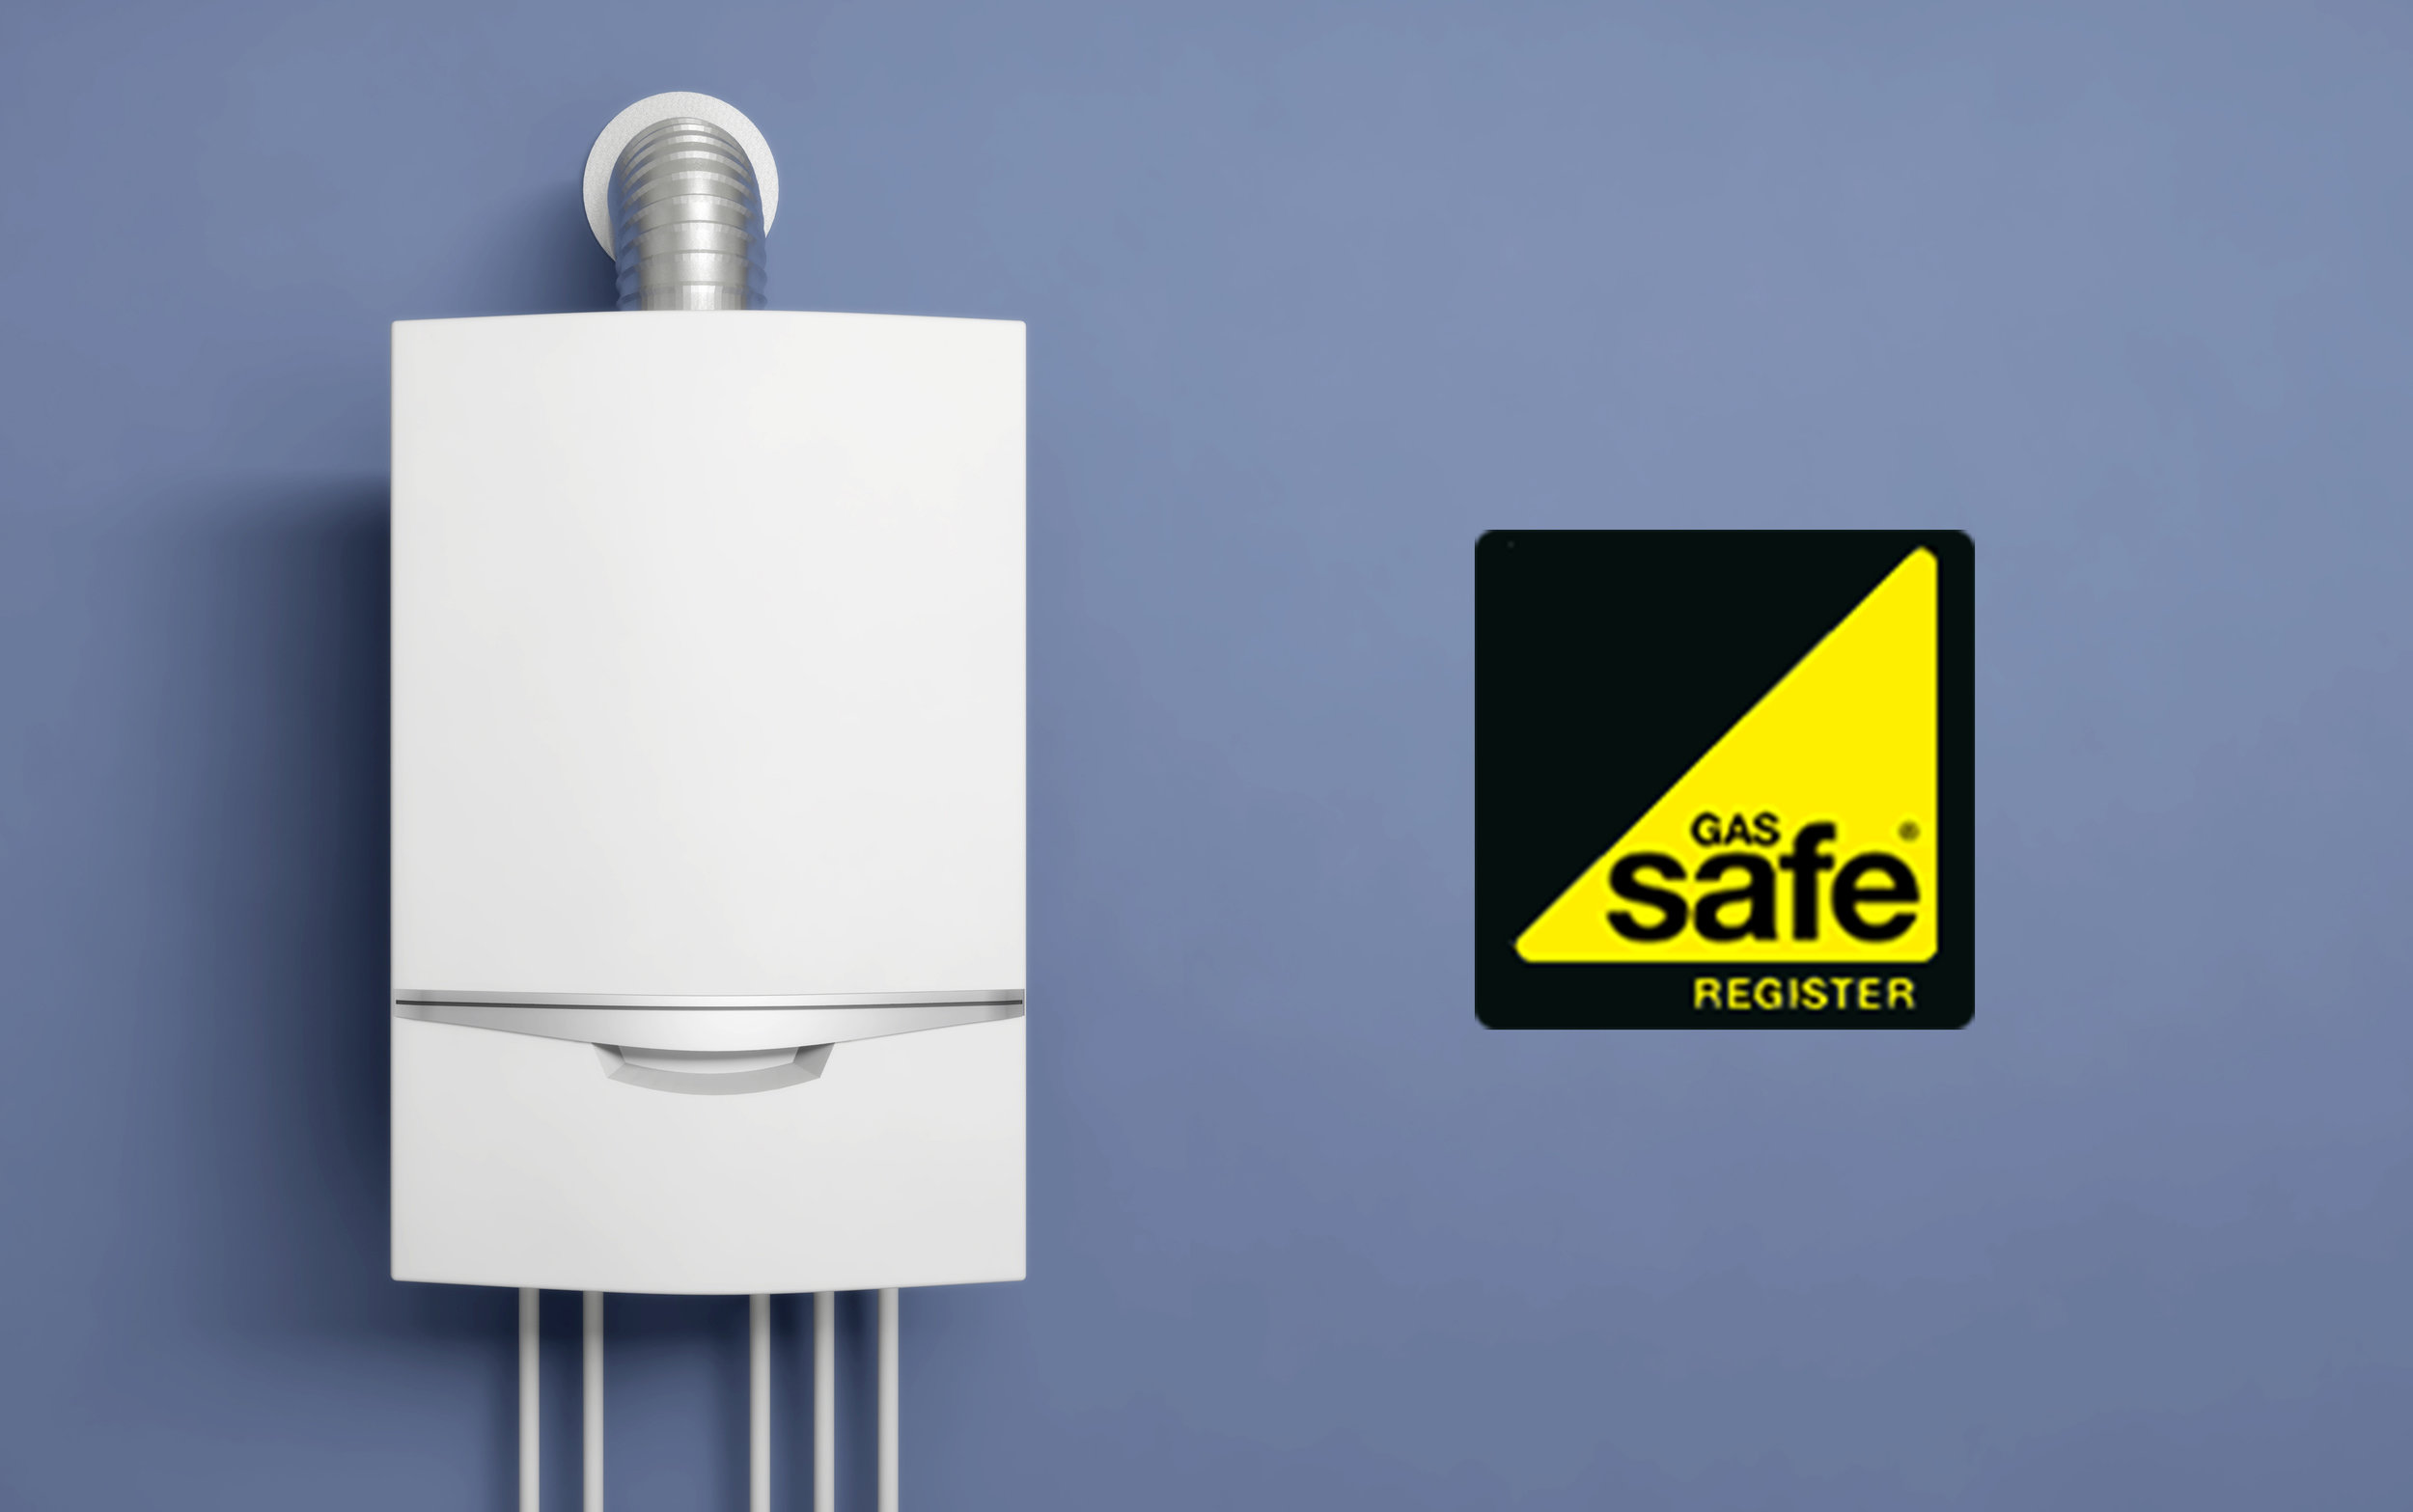 - Landlord Gas Safty